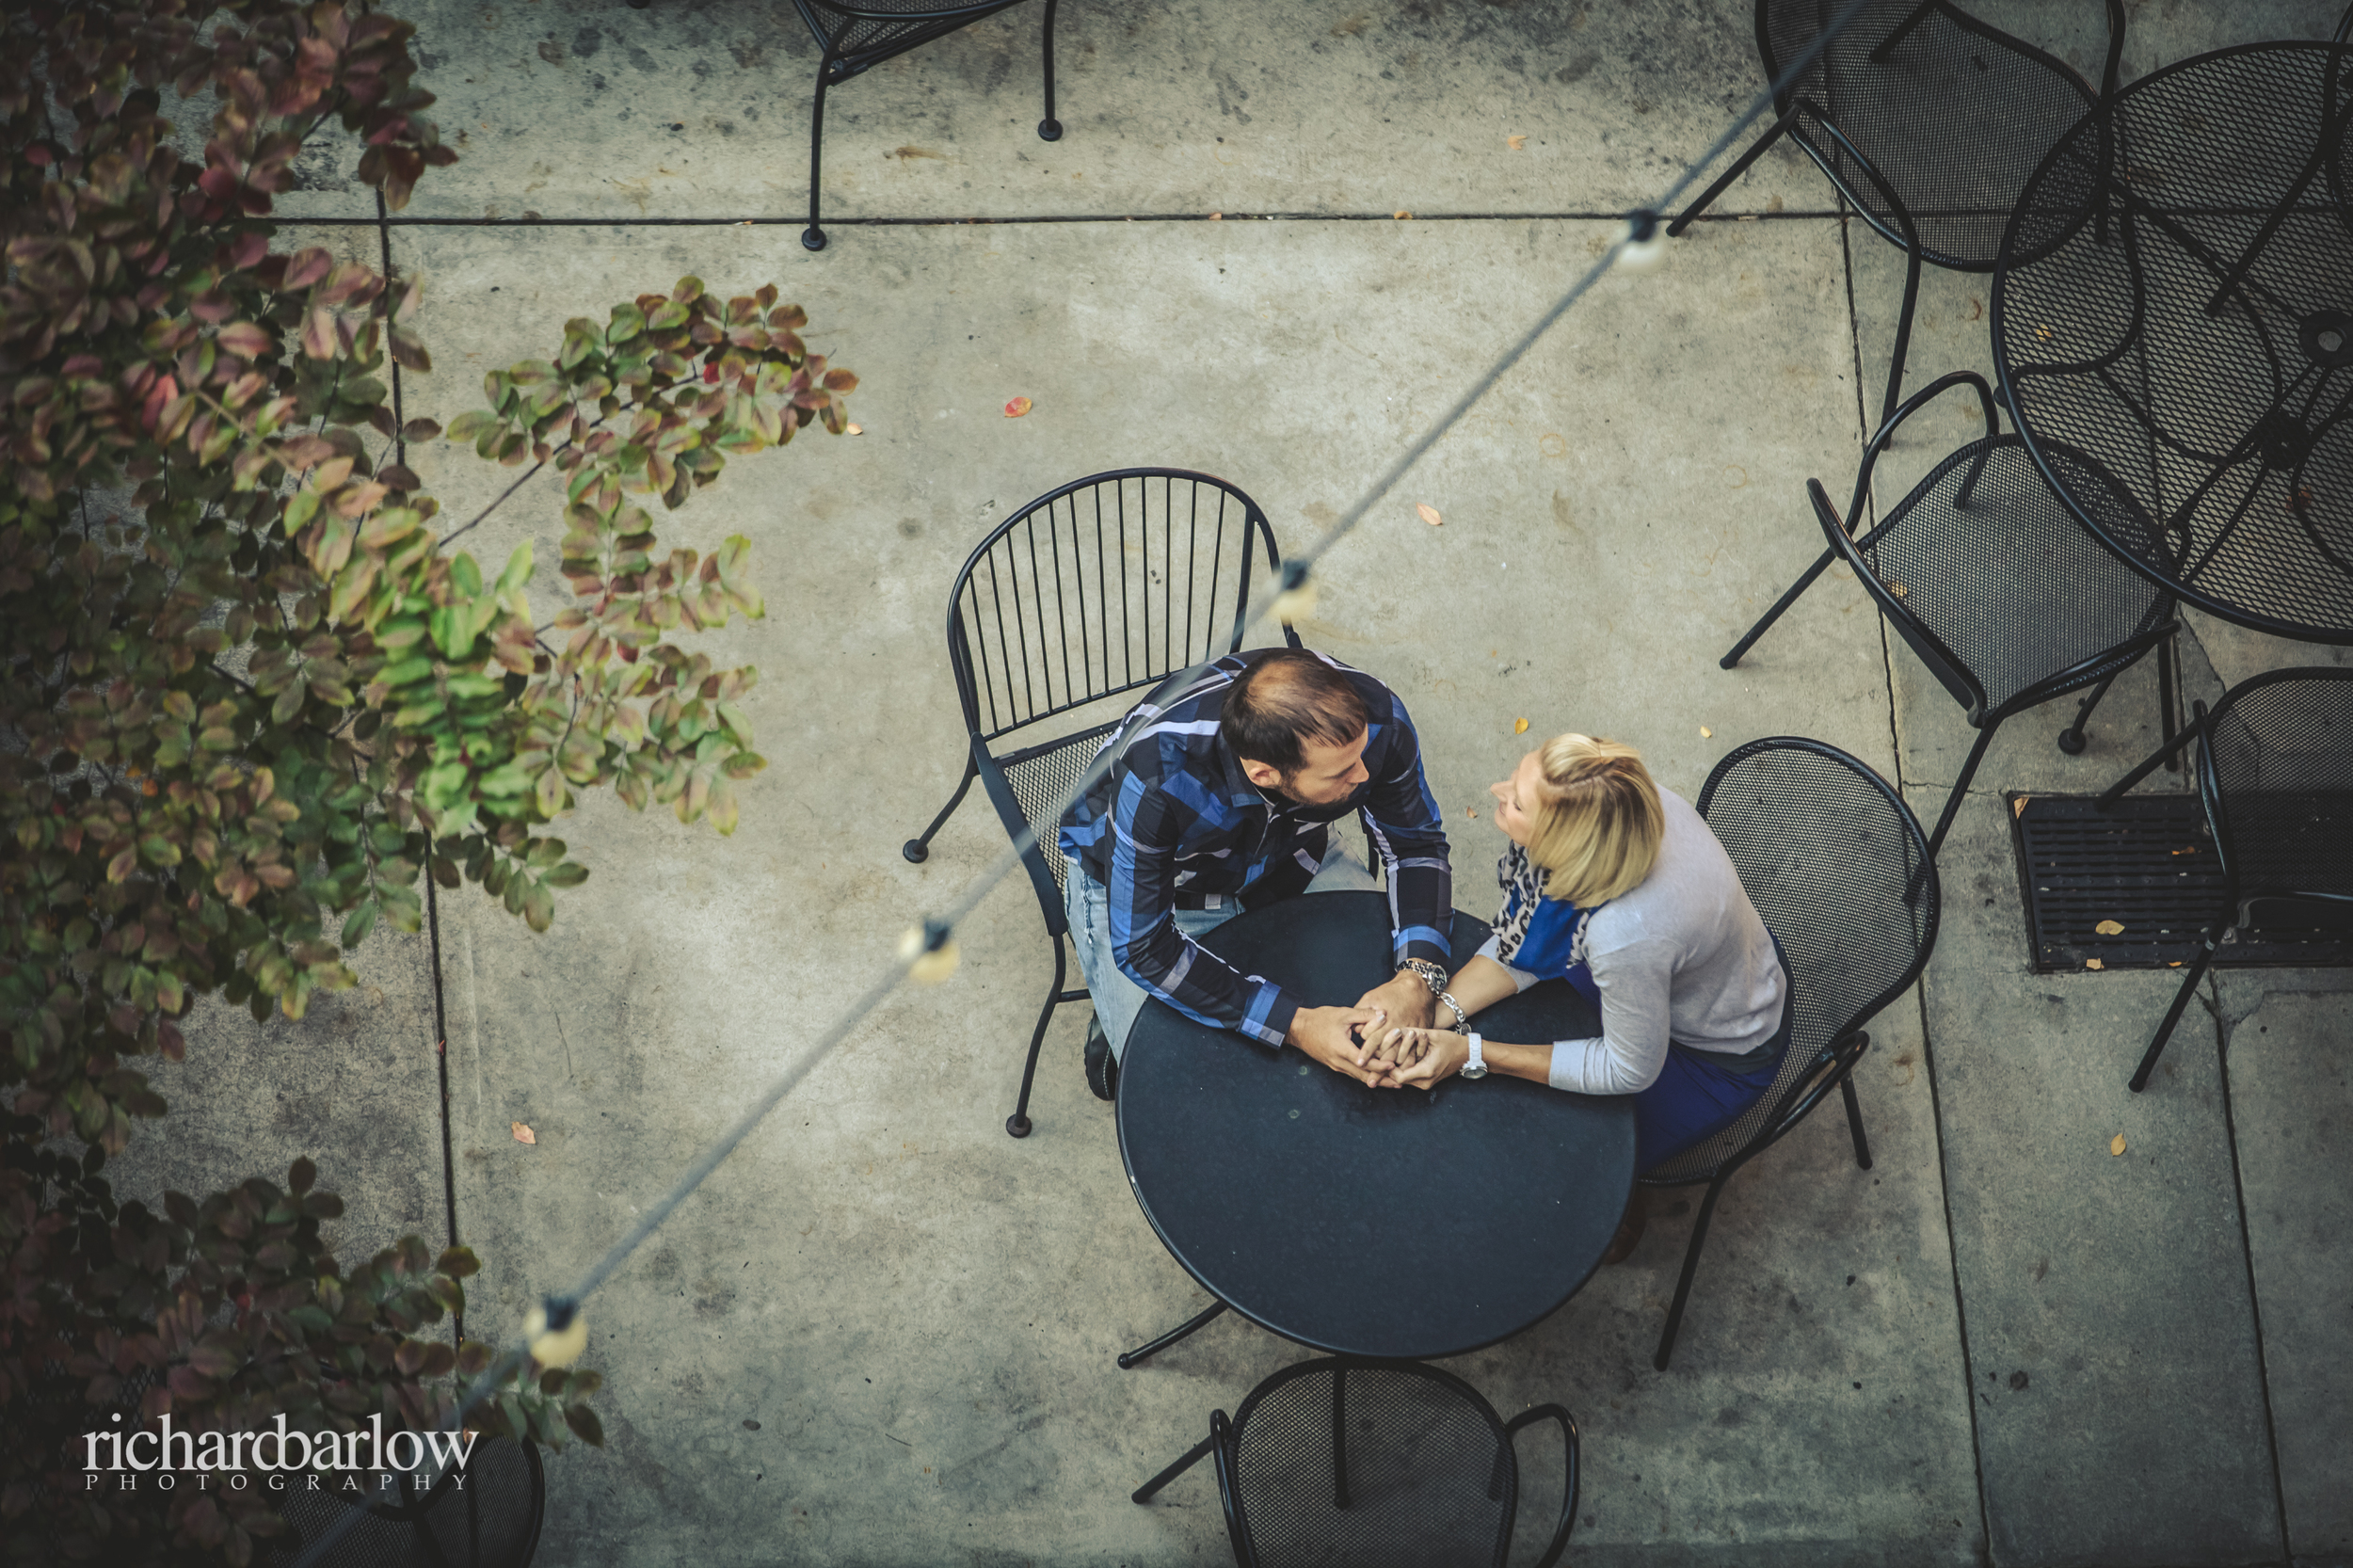 richard barlow photography - Mike and Renee Engagement Session NC-9.jpg